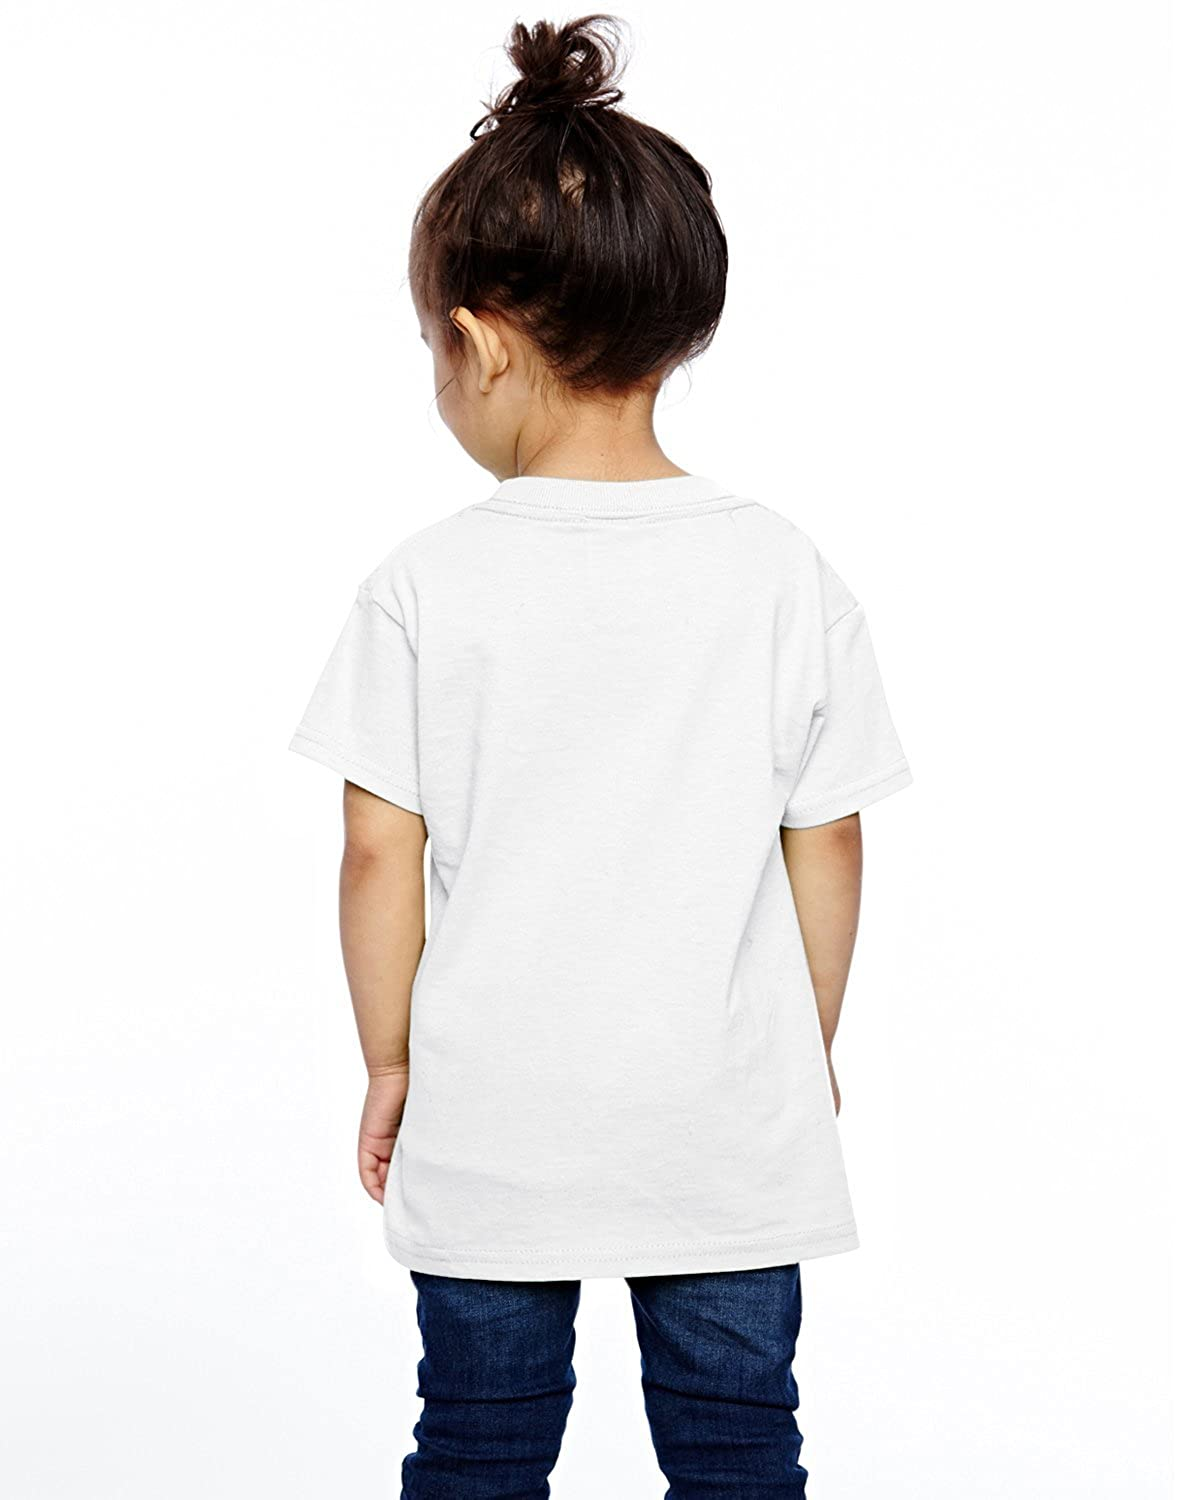 XYMYFC-E Autism Awareness Puzzle Piece 2-6 Years Old Kids Short Sleeve Tee Shirt